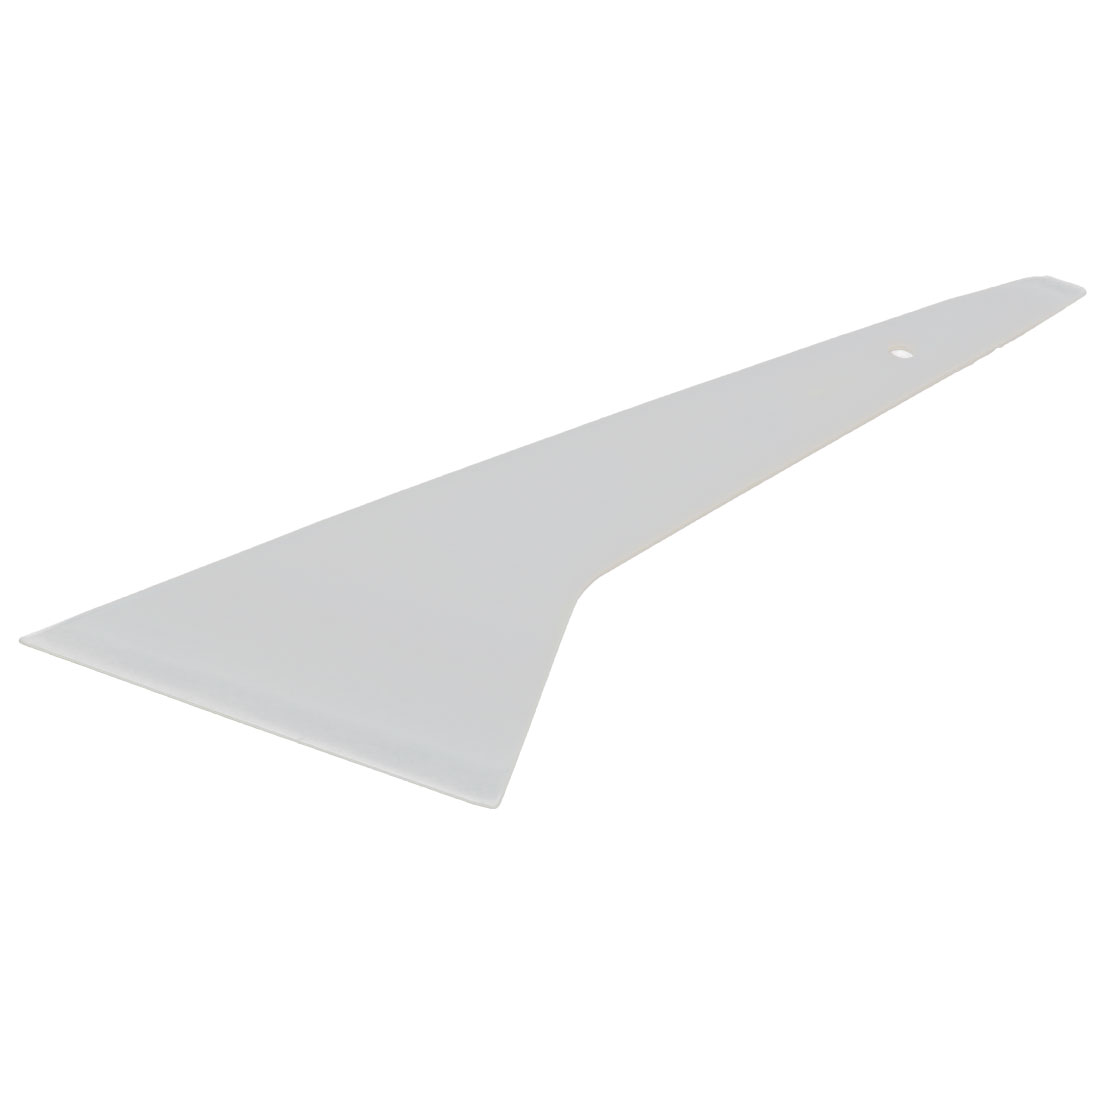 Car Window Plastic Film Bubble Tint Scraper Tool White 19 x 17 x 0.5cm